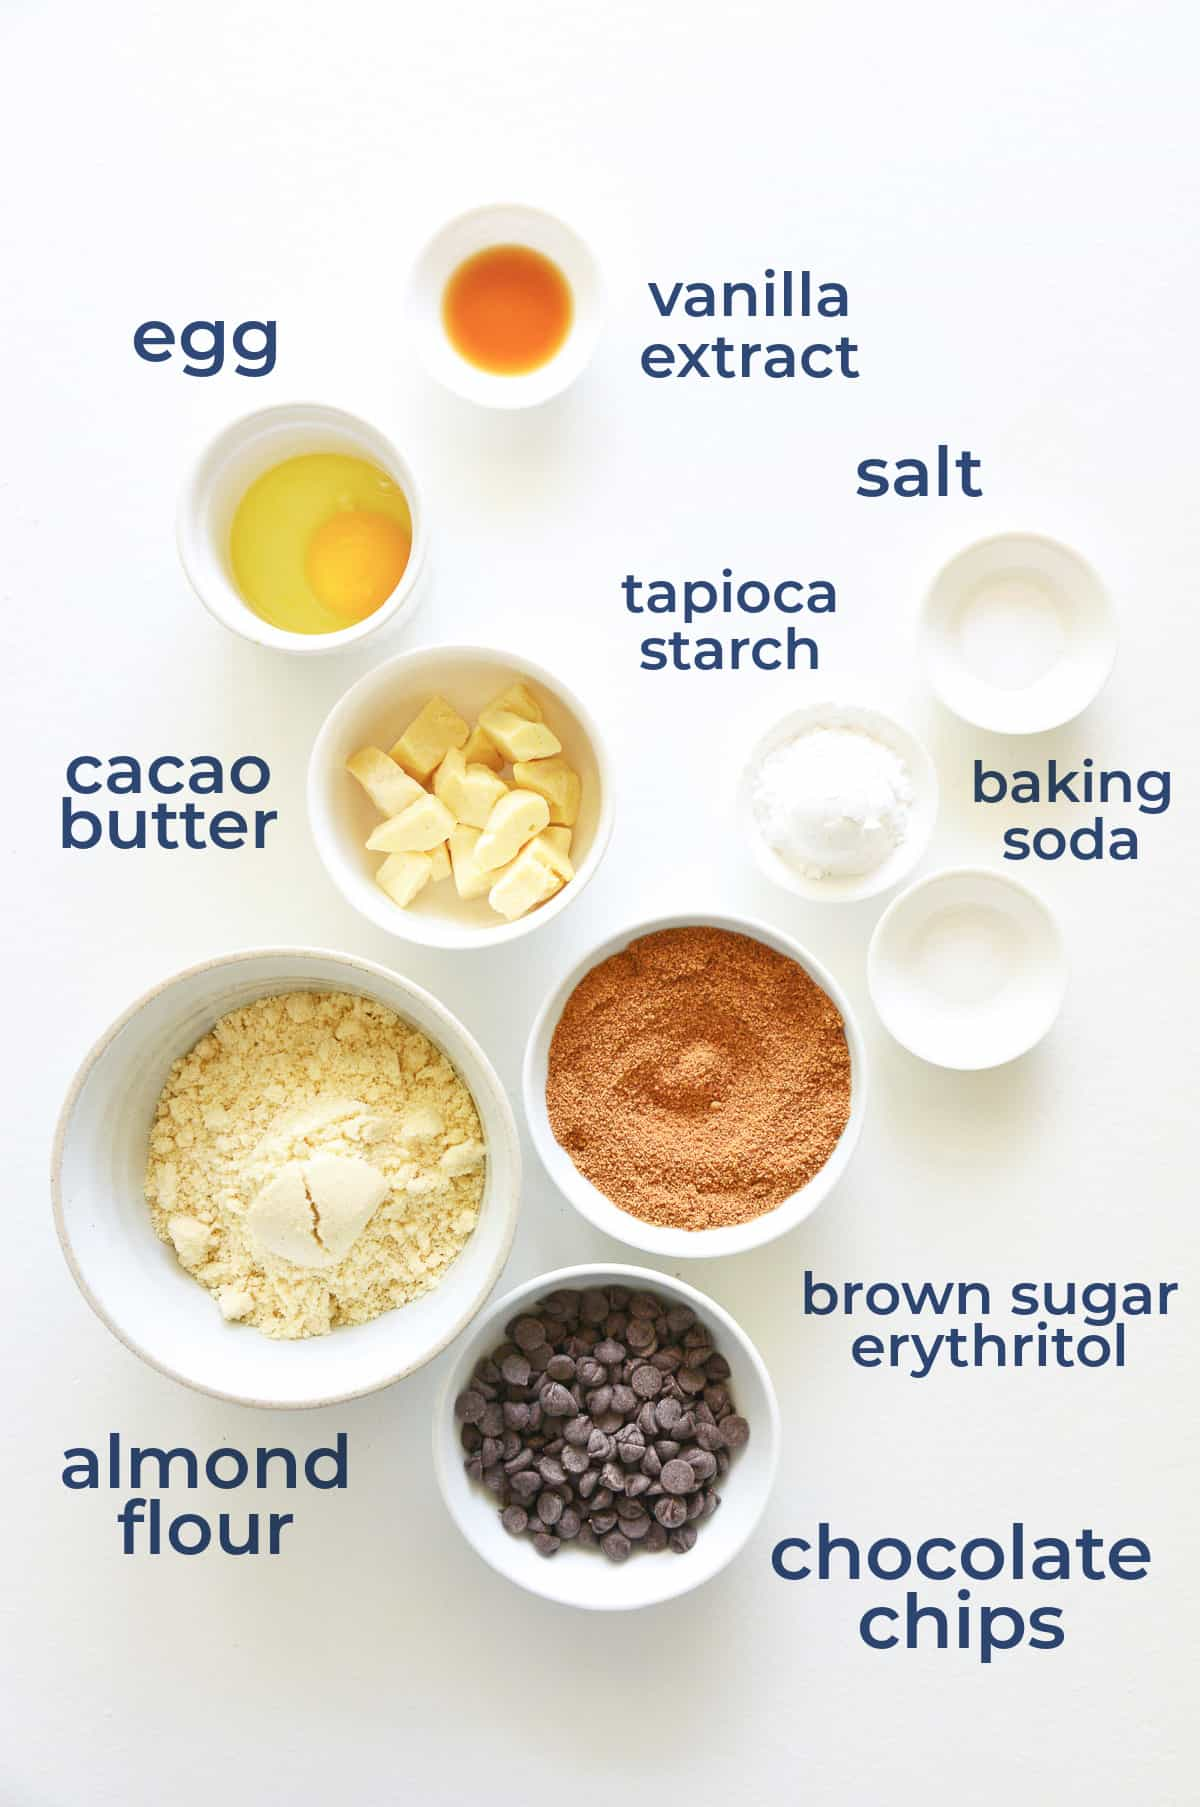 Ingredients all laid out in individual bowls to make low carb and gluten free chocolate chips cookies